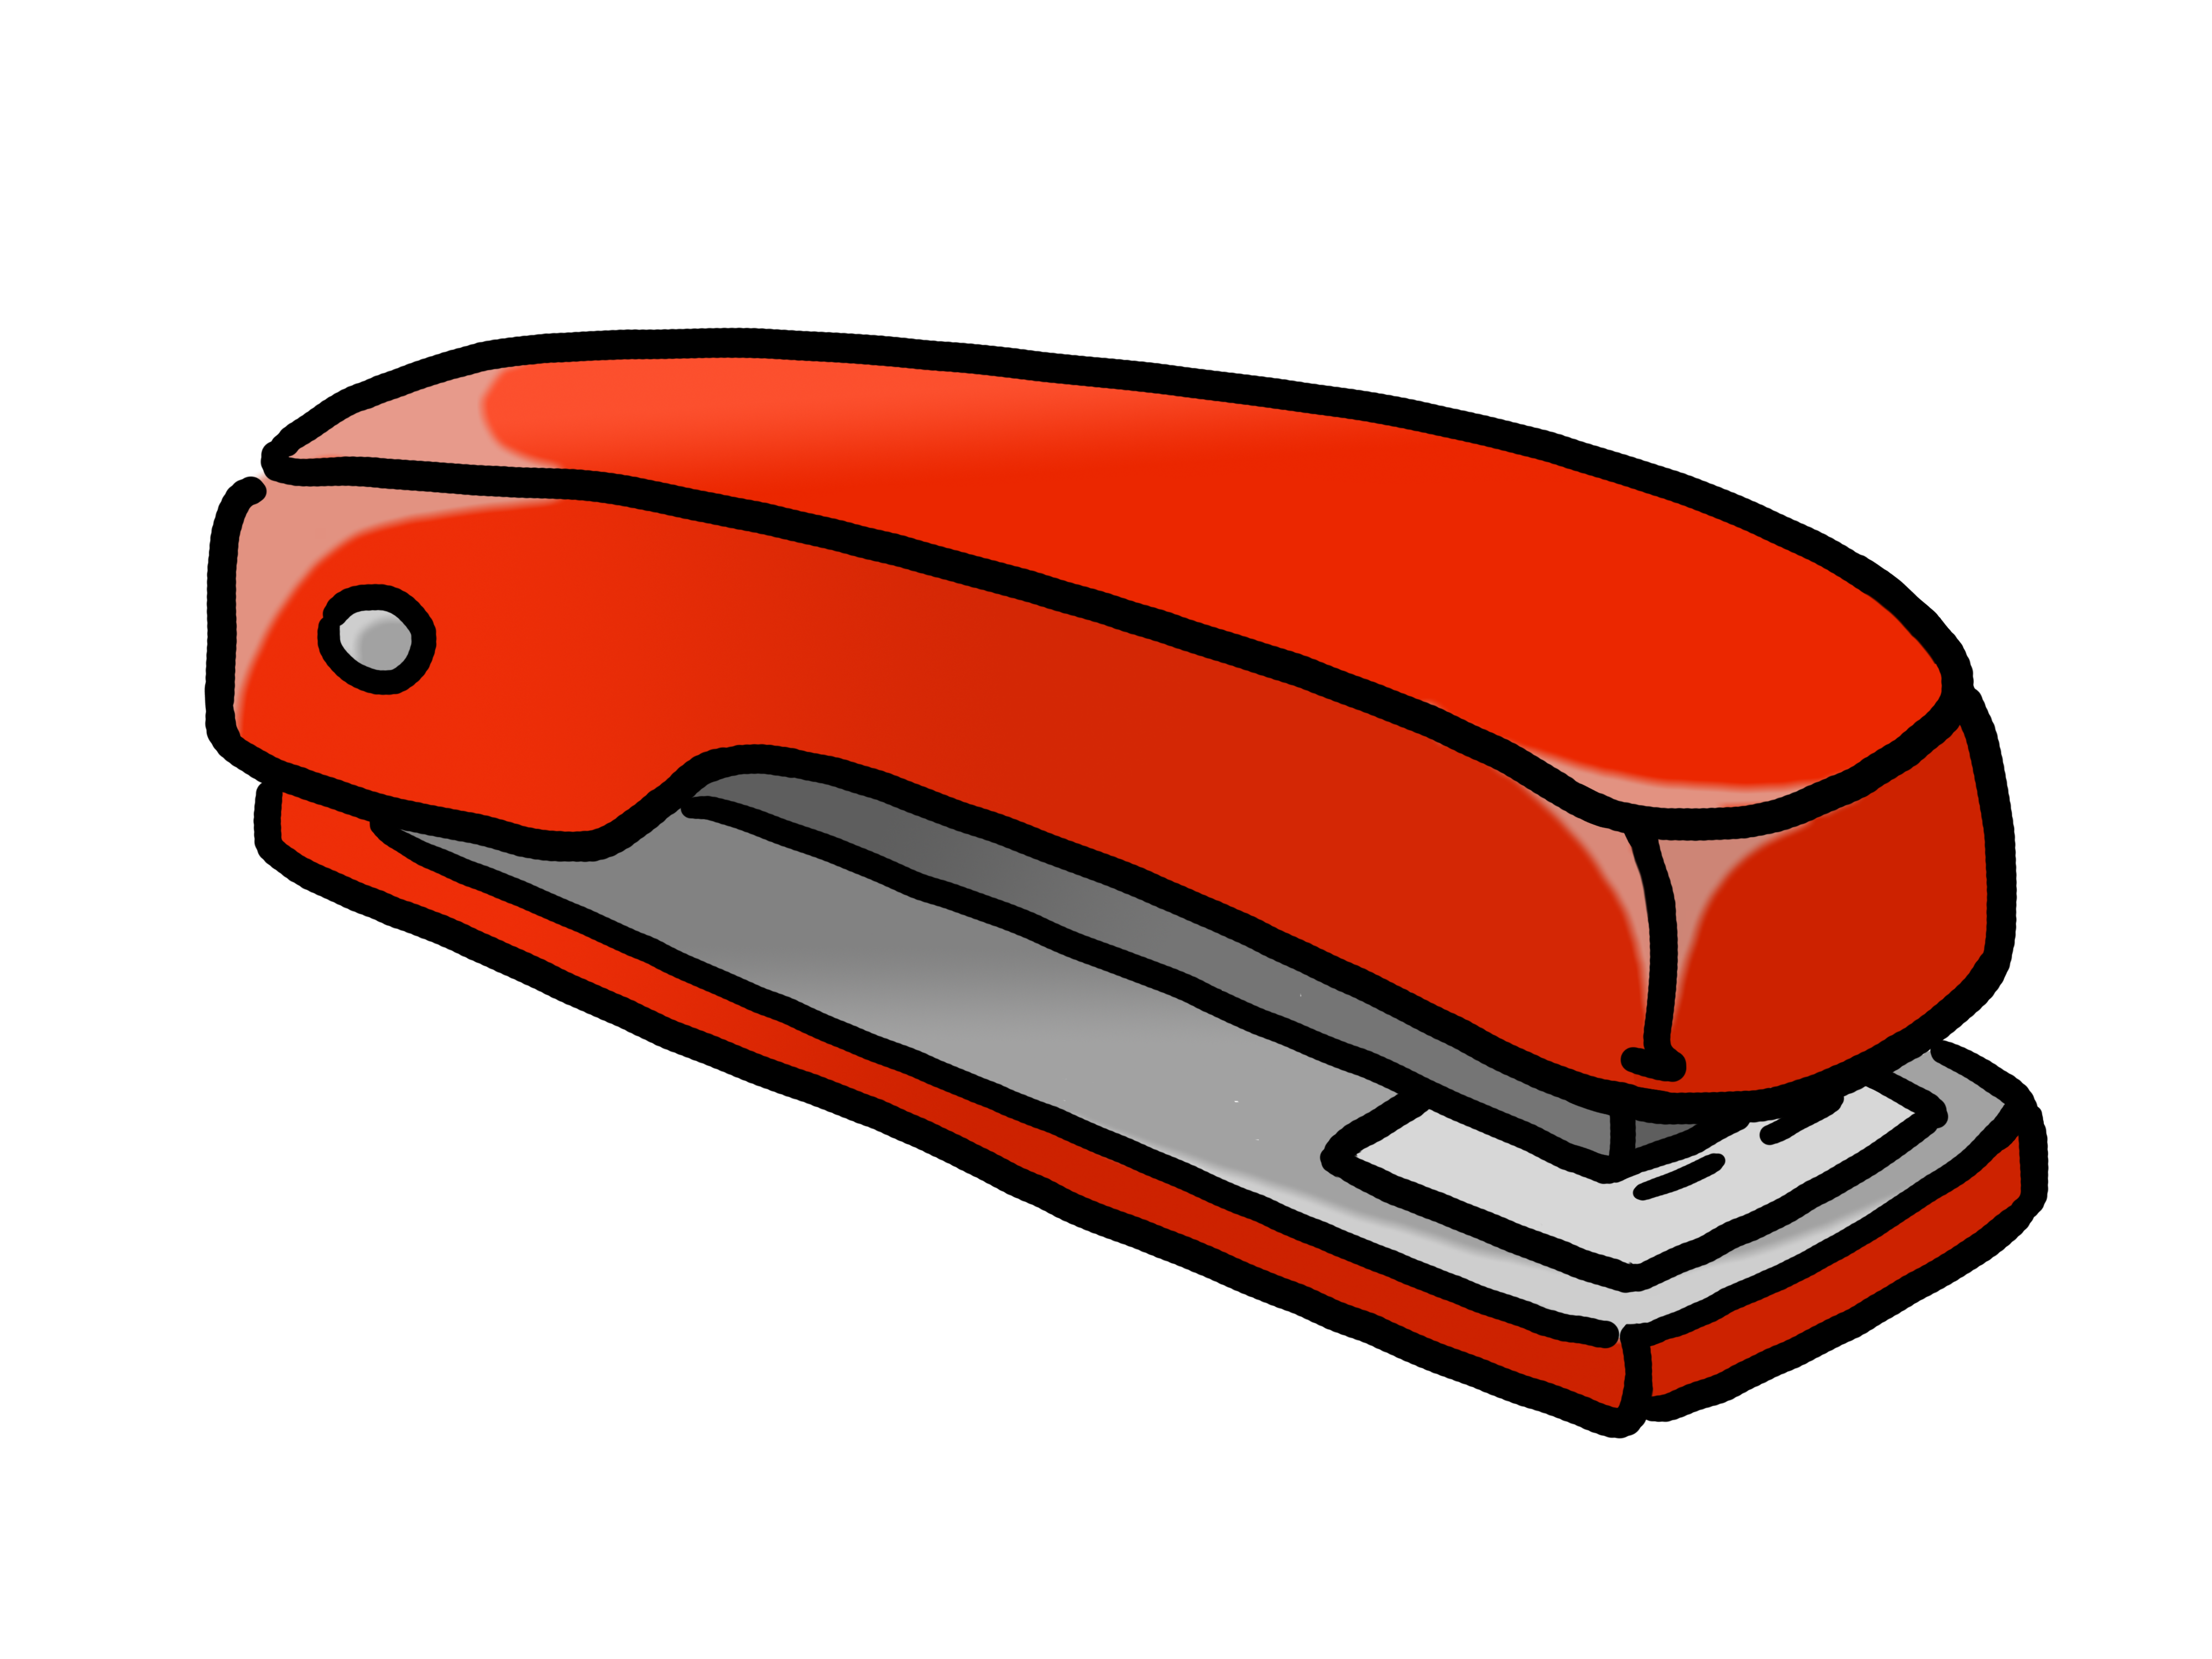 Stapler drawing simple. Clipart